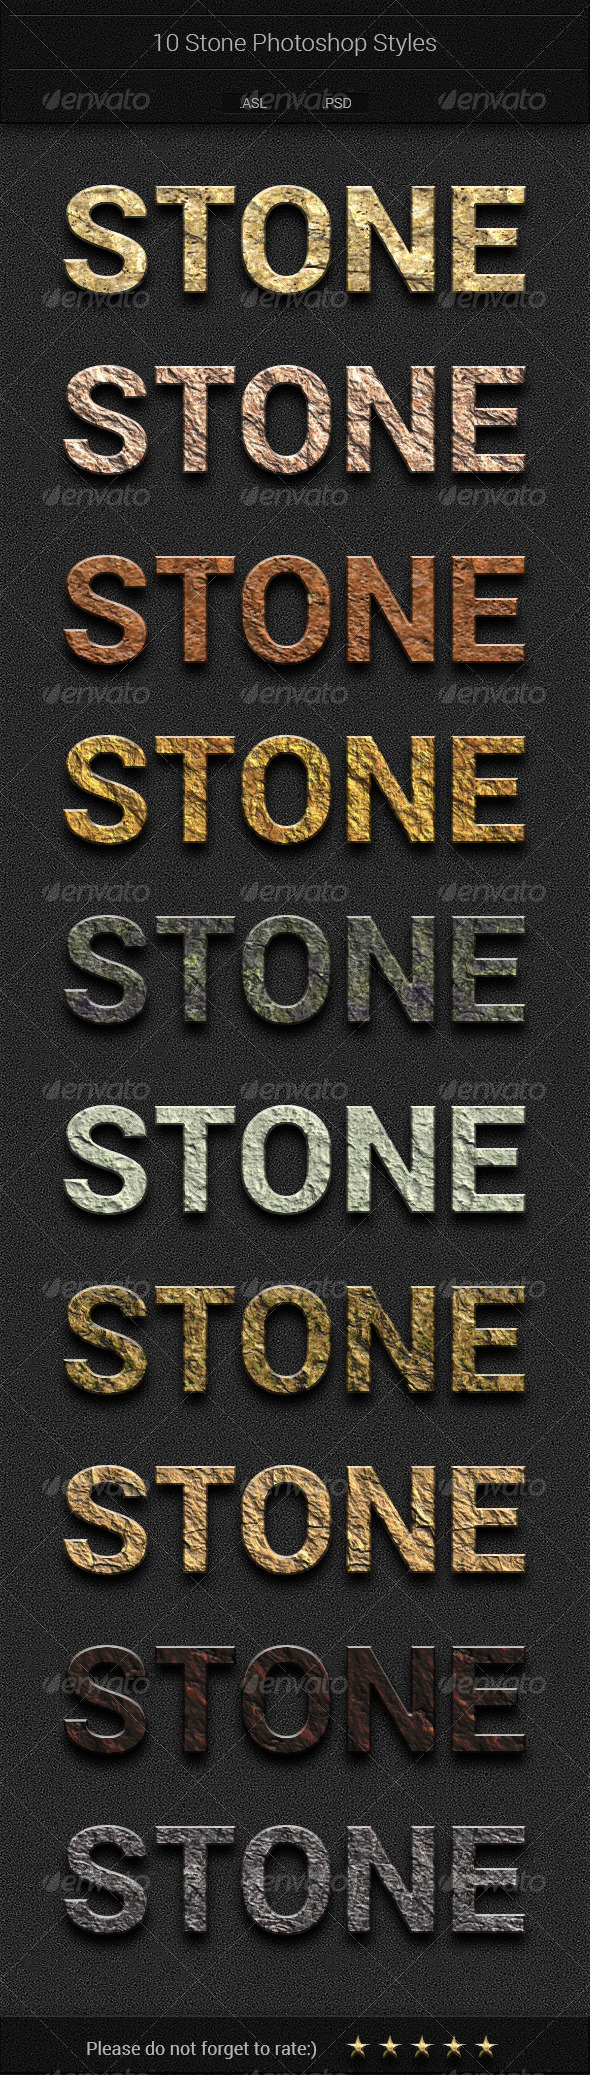 GraphicRiver 10 Stone Text Styles 7457825